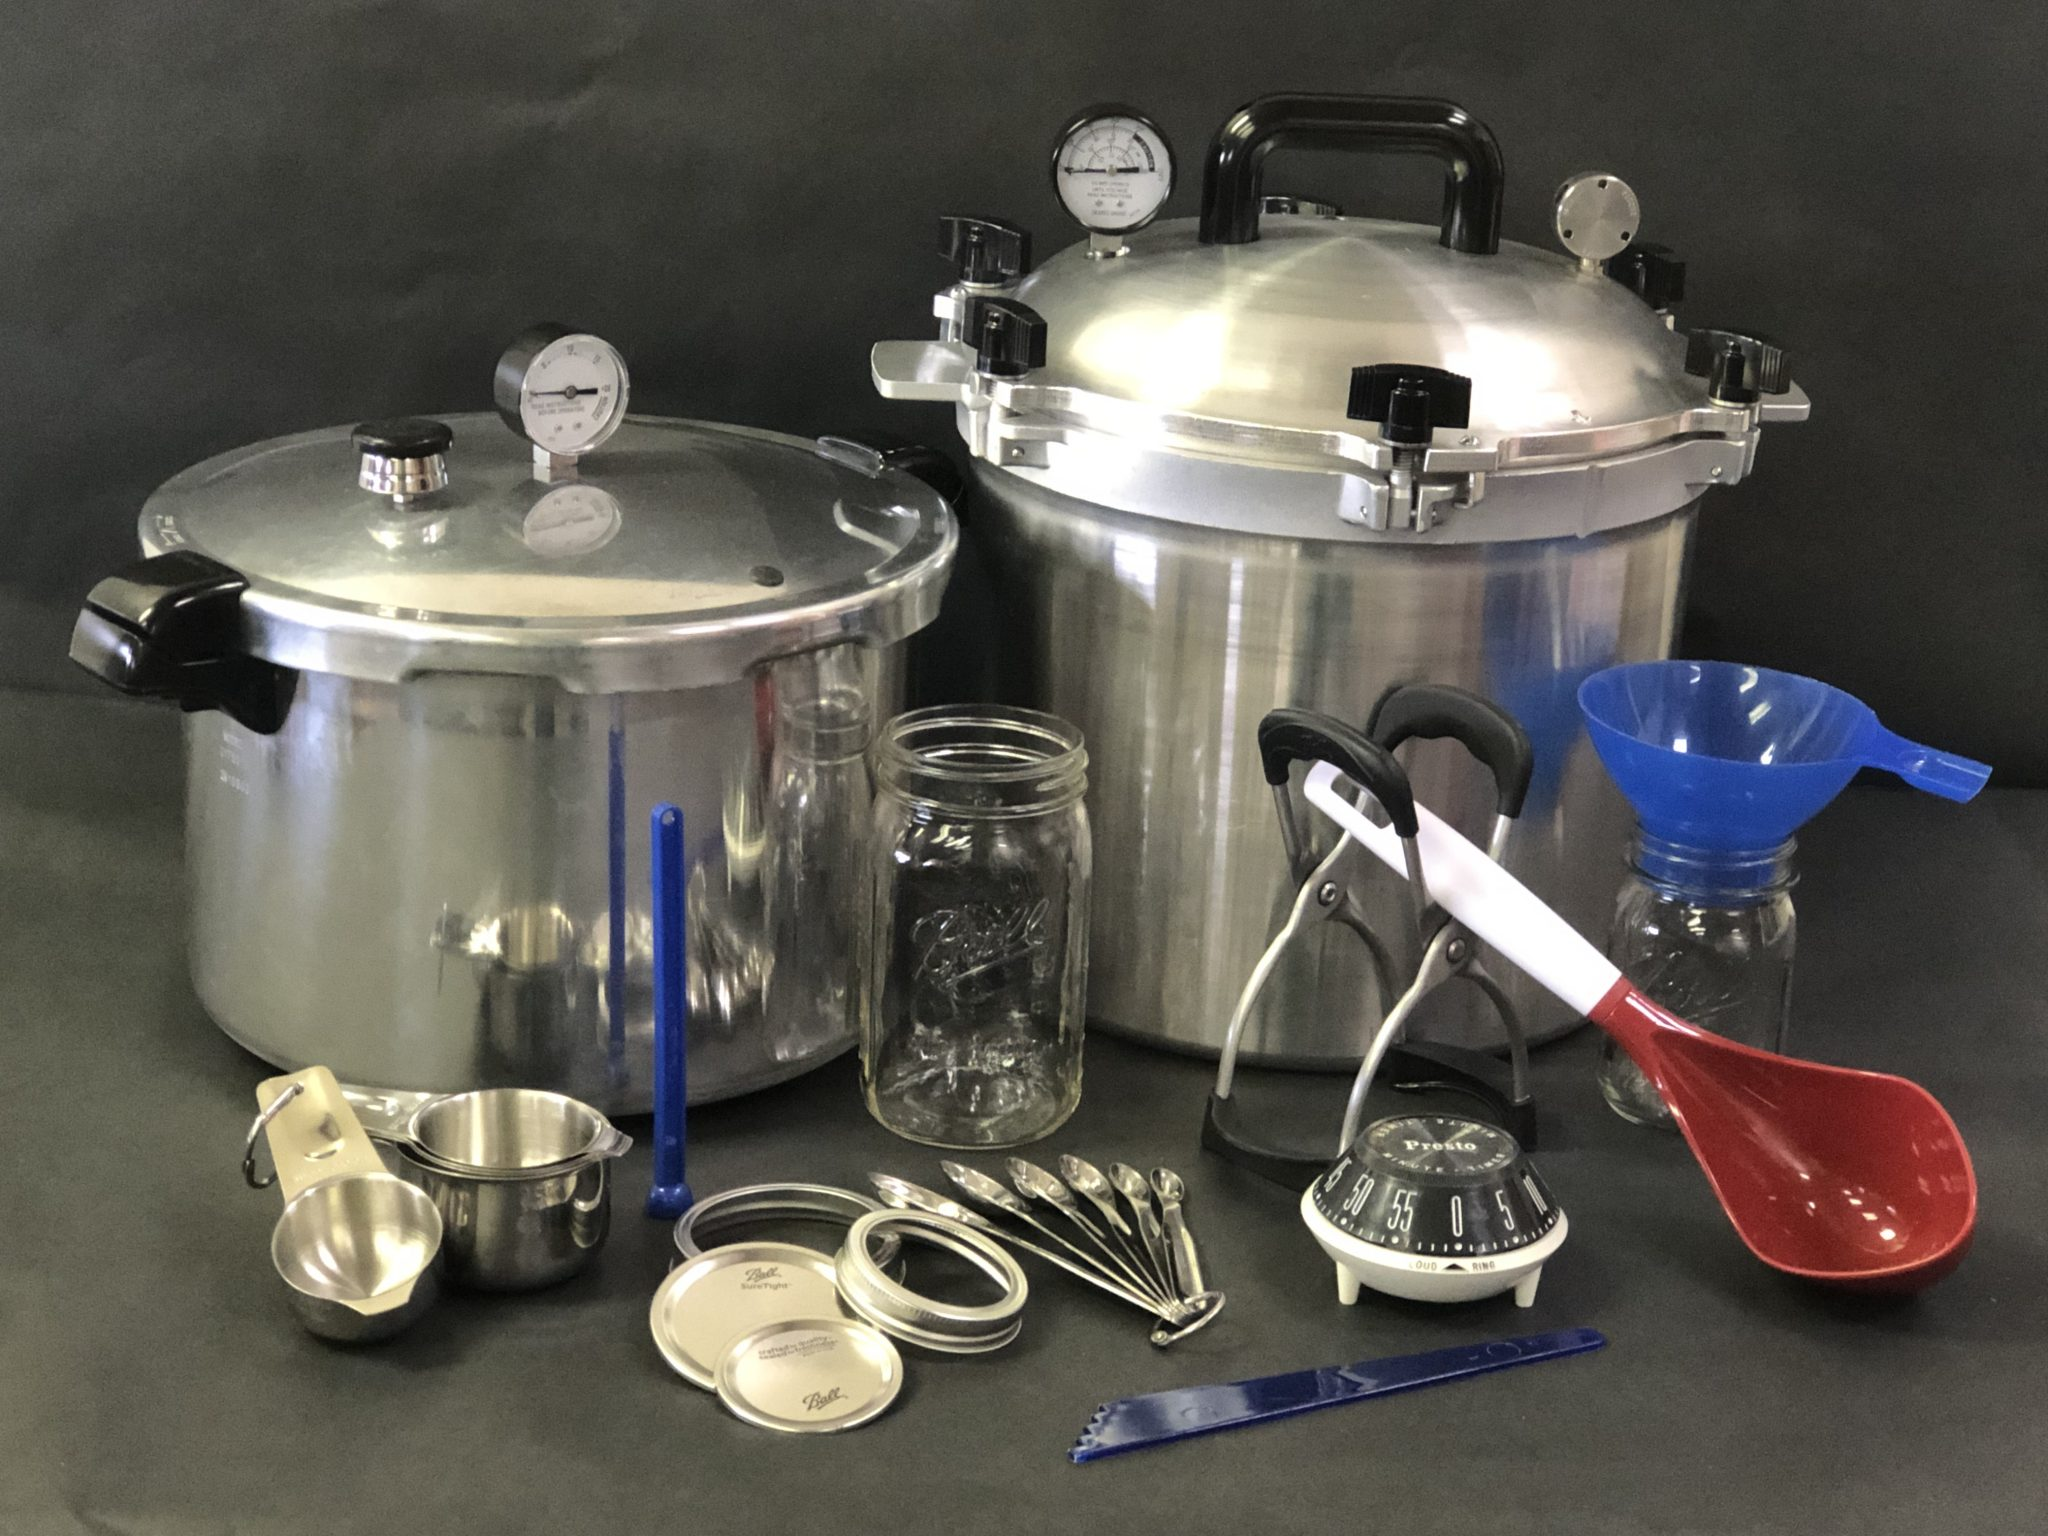 Figure 1. Tools for proper canning. Never process low acid vegetables or meat in a boiling water canner. See the chart in table 1 for proper canning times and pressure.